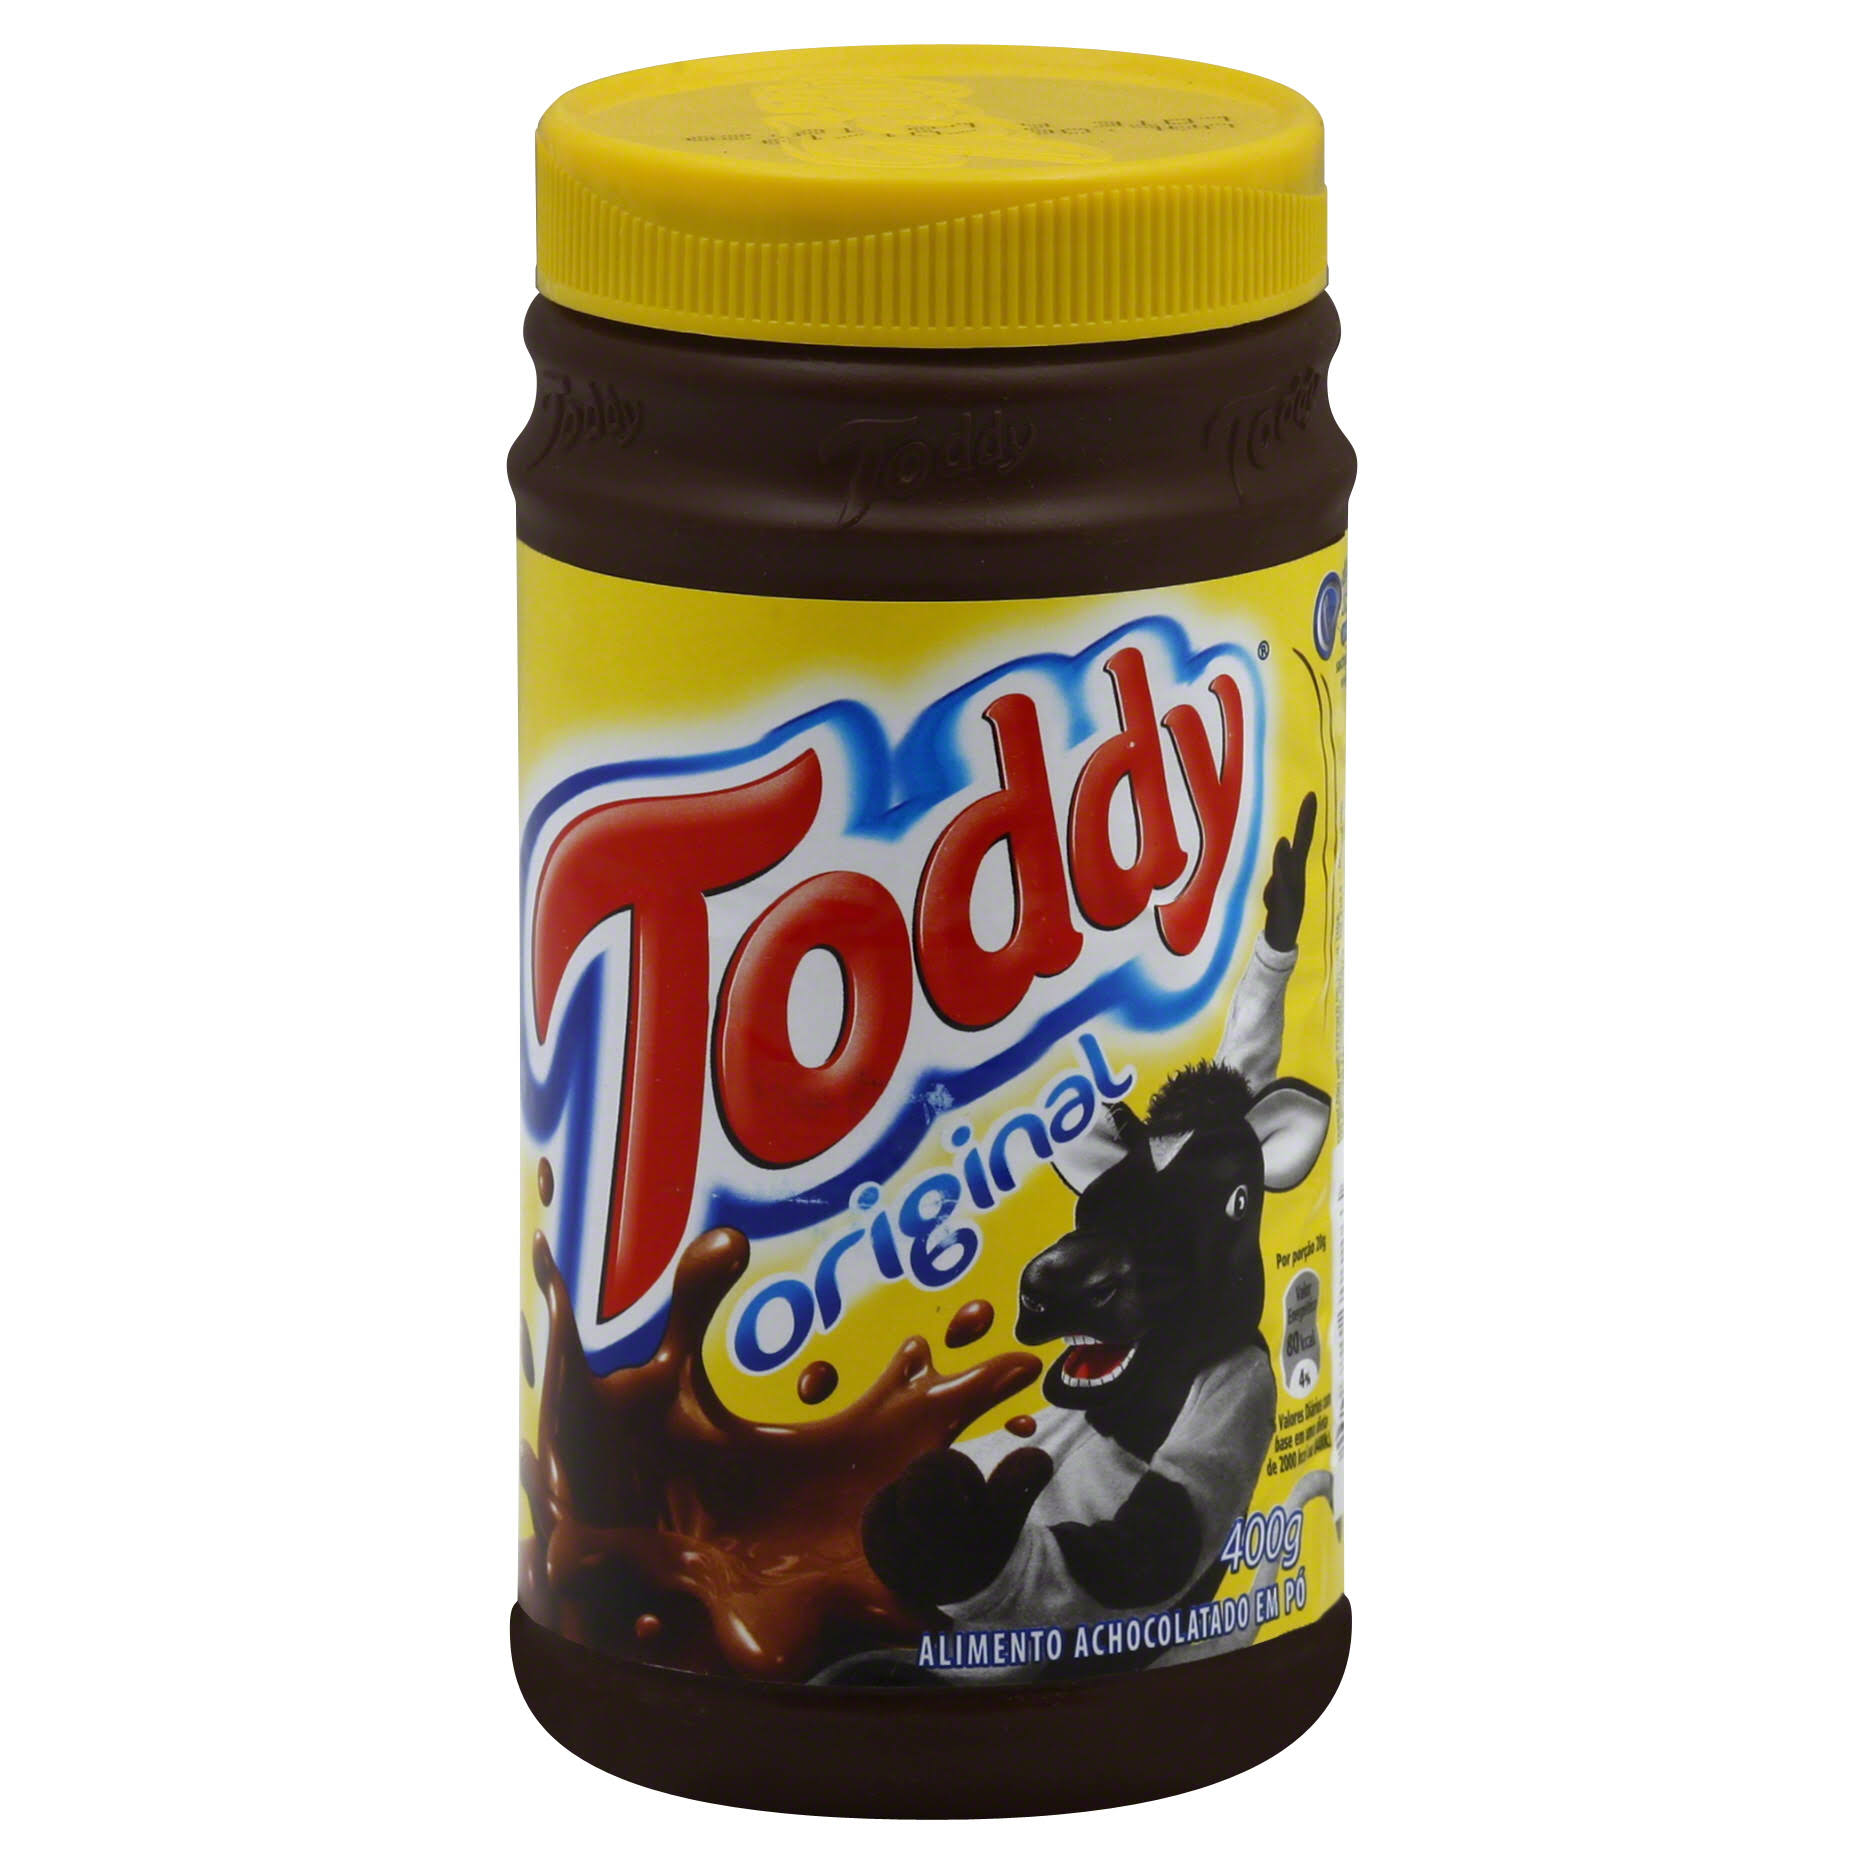 Toddy Drink Mix Original - 14.1oz, Chocolate